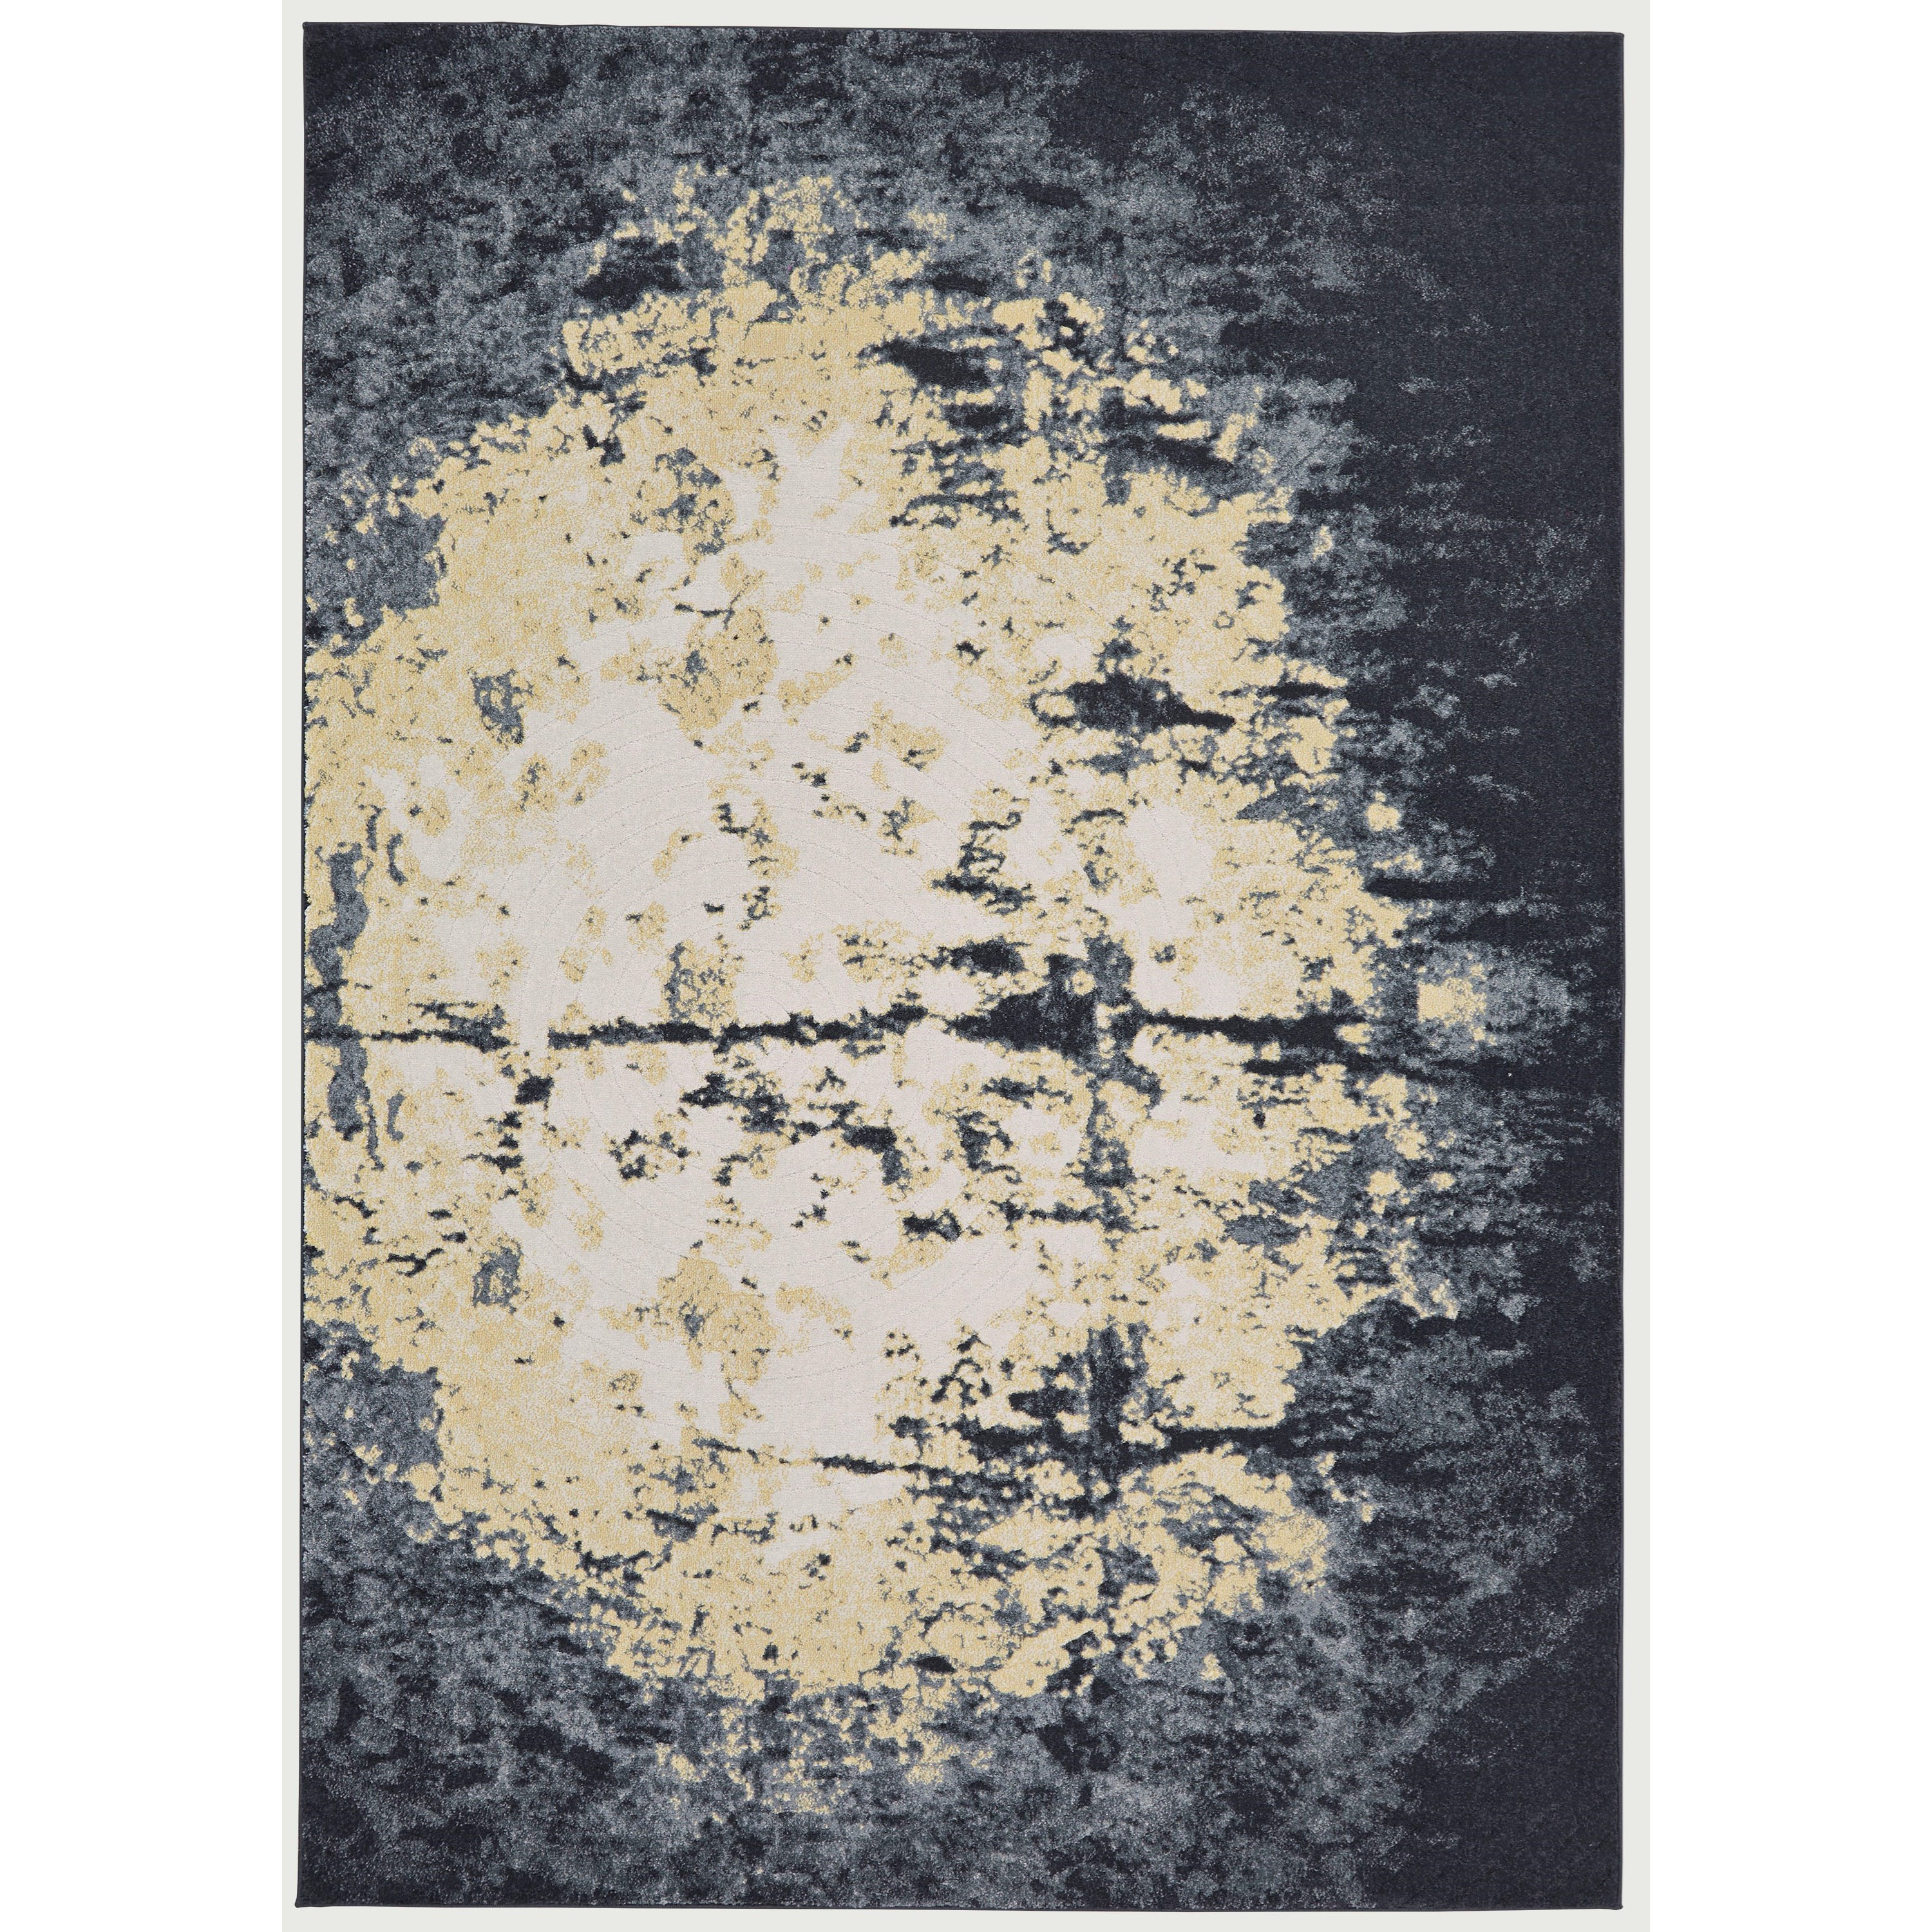 Bleecker Charcoal 5' x 8' Area Rug by Feizy Rugs at Sprintz Furniture